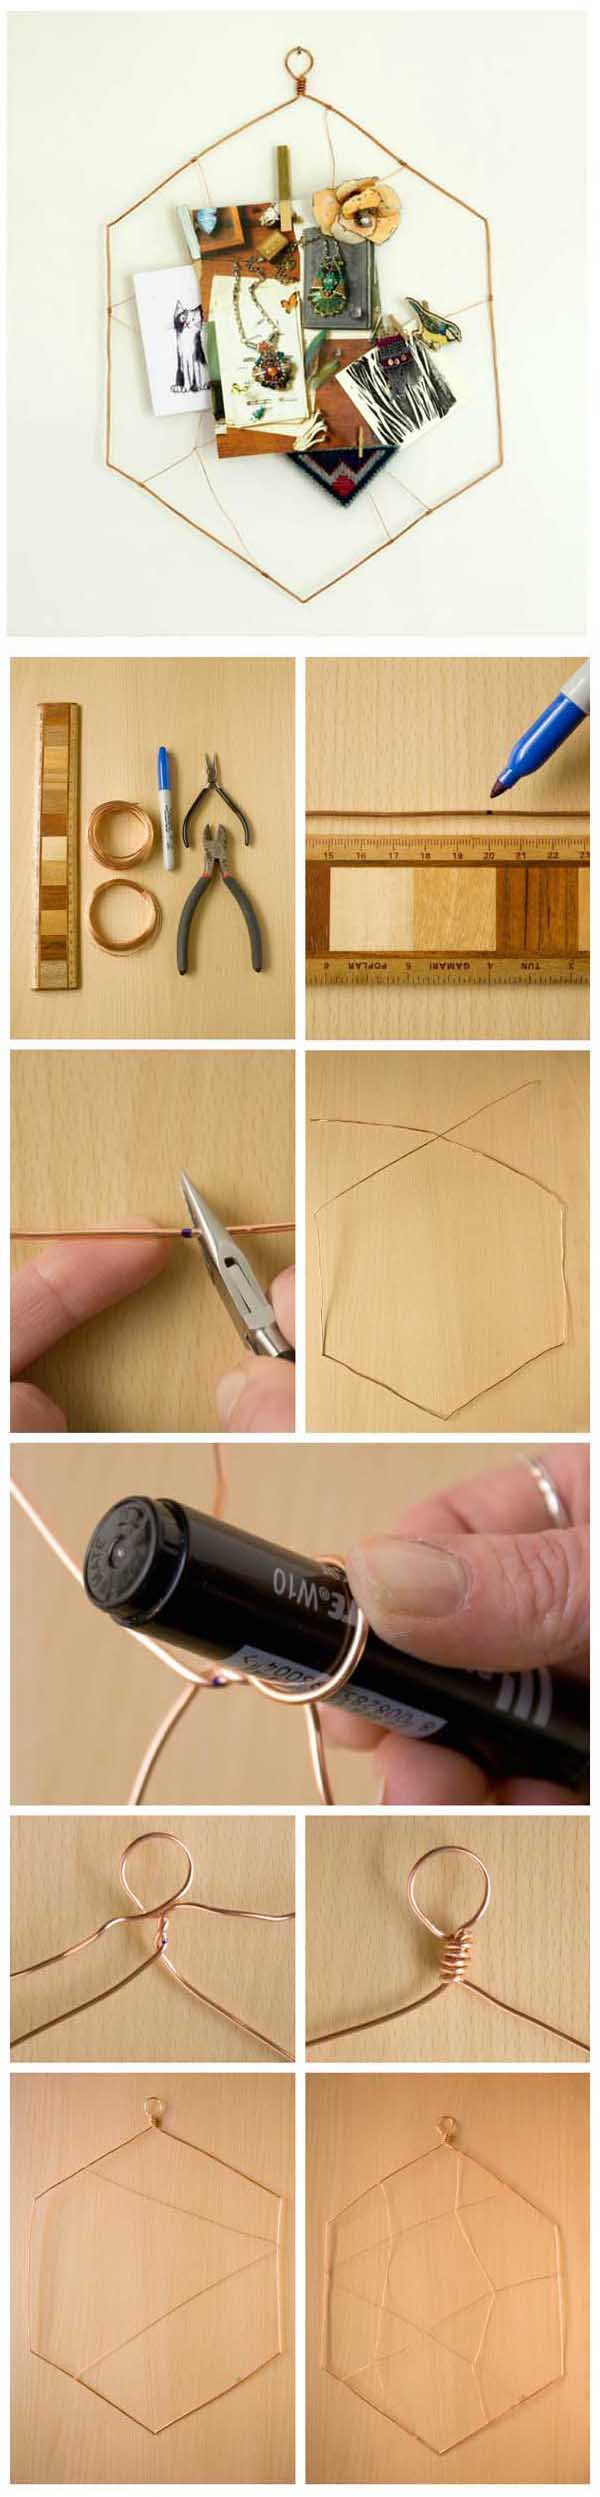 DIY copper wire hexagon notice board tutorial